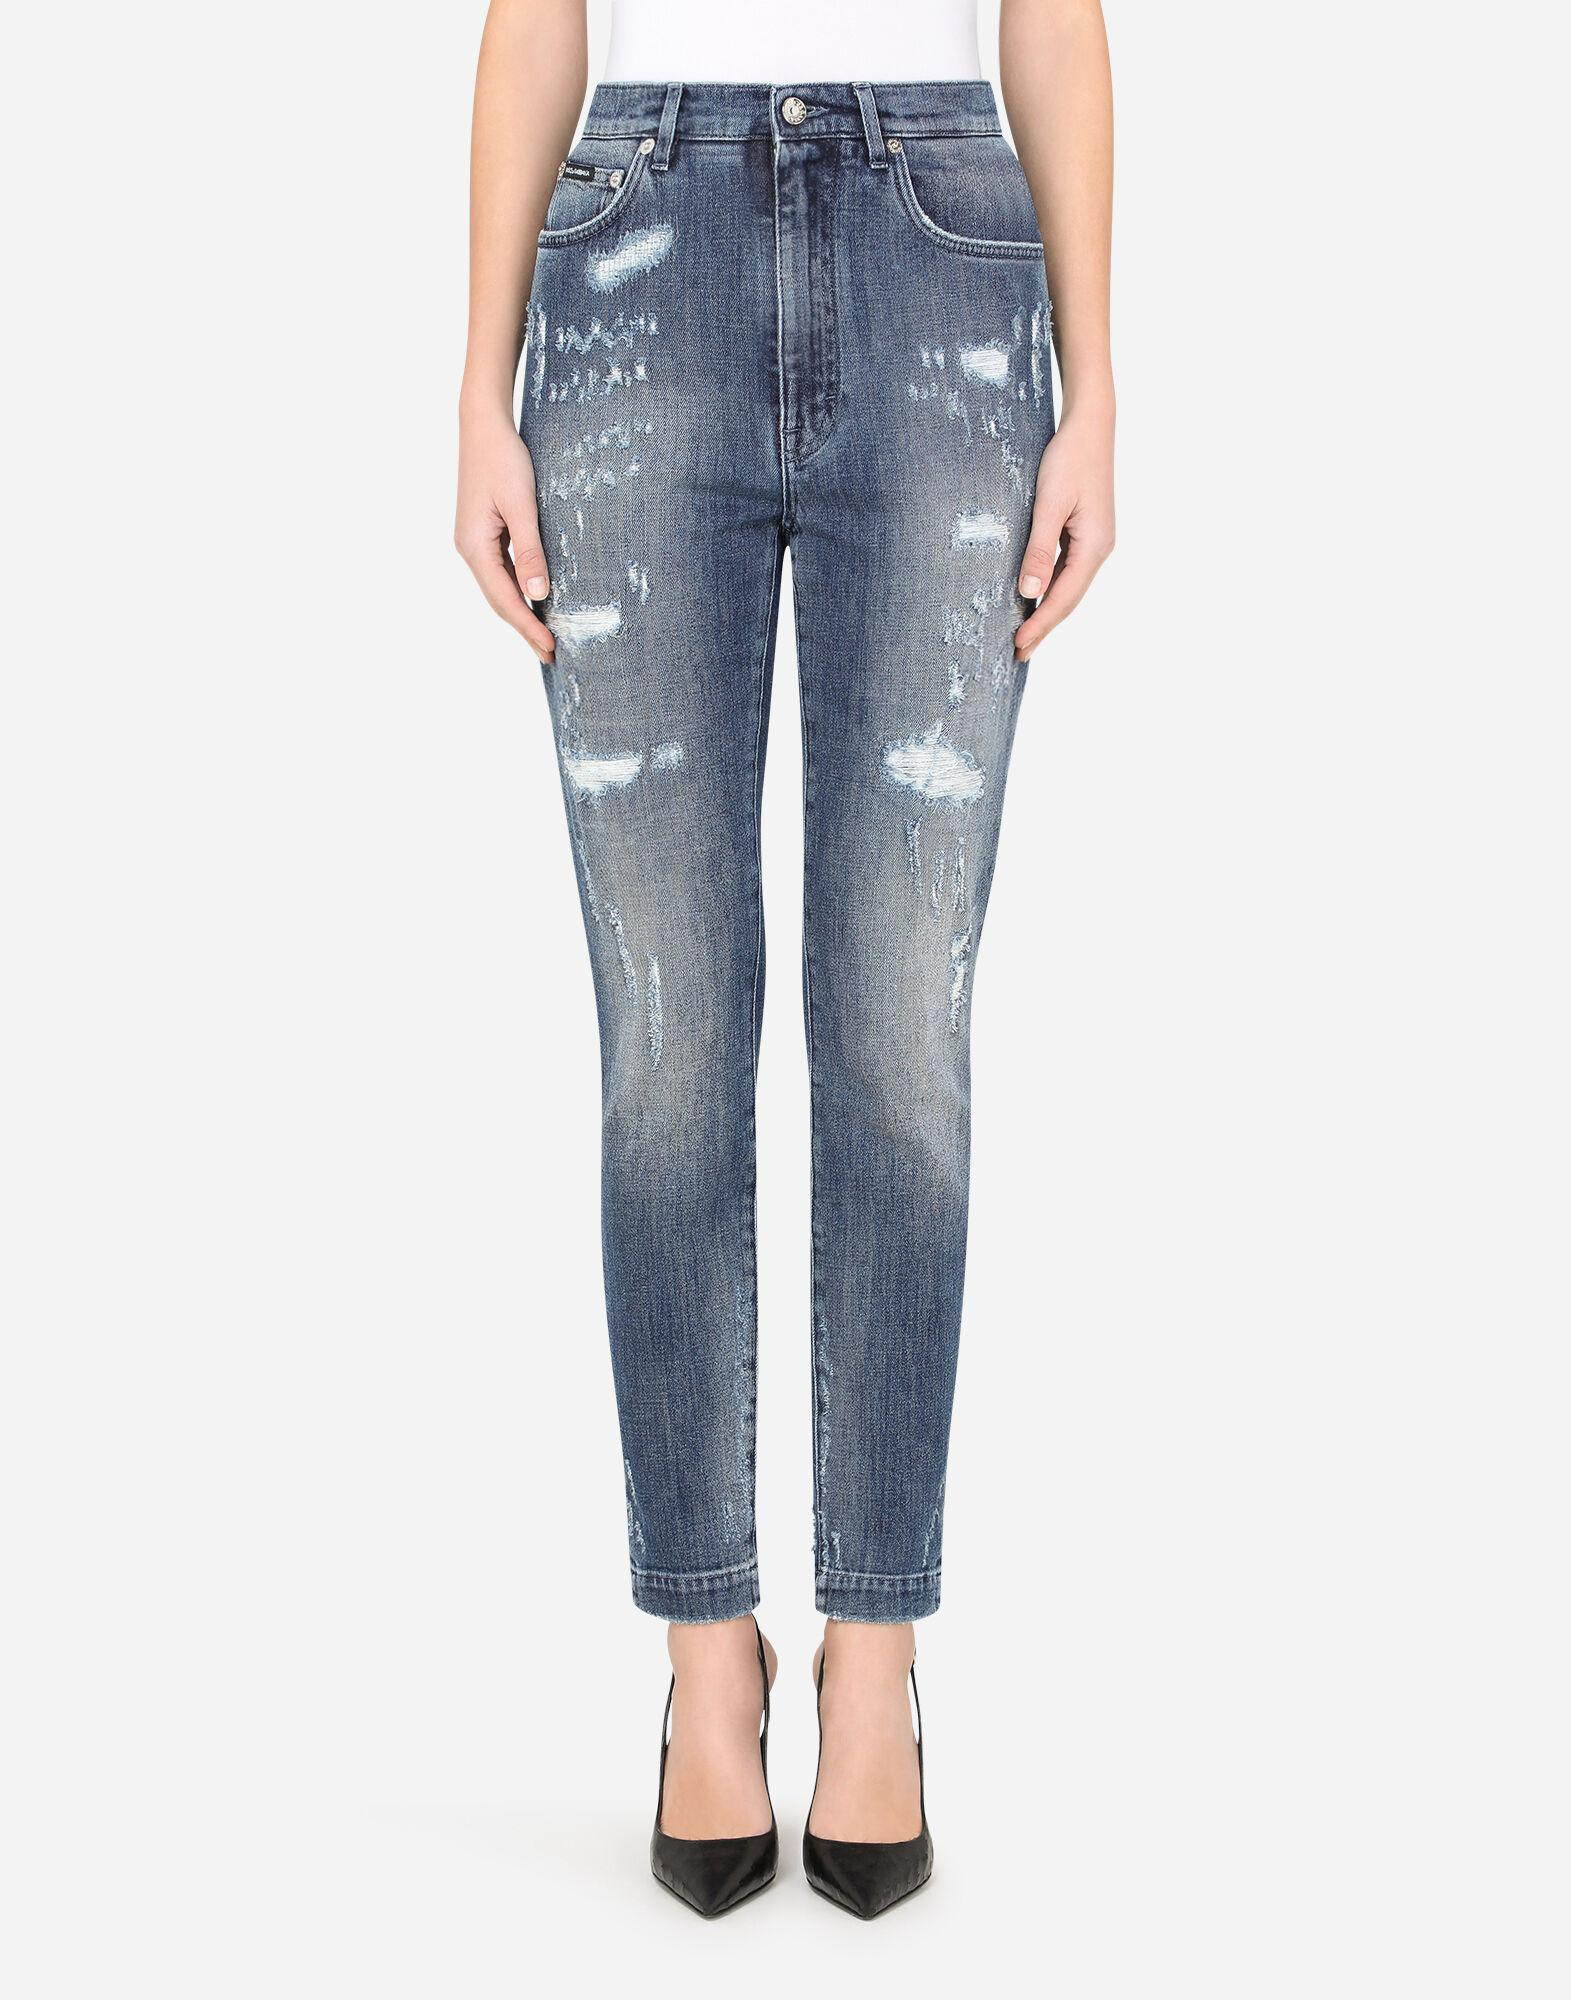 Audrey jeans in blue denim with rips